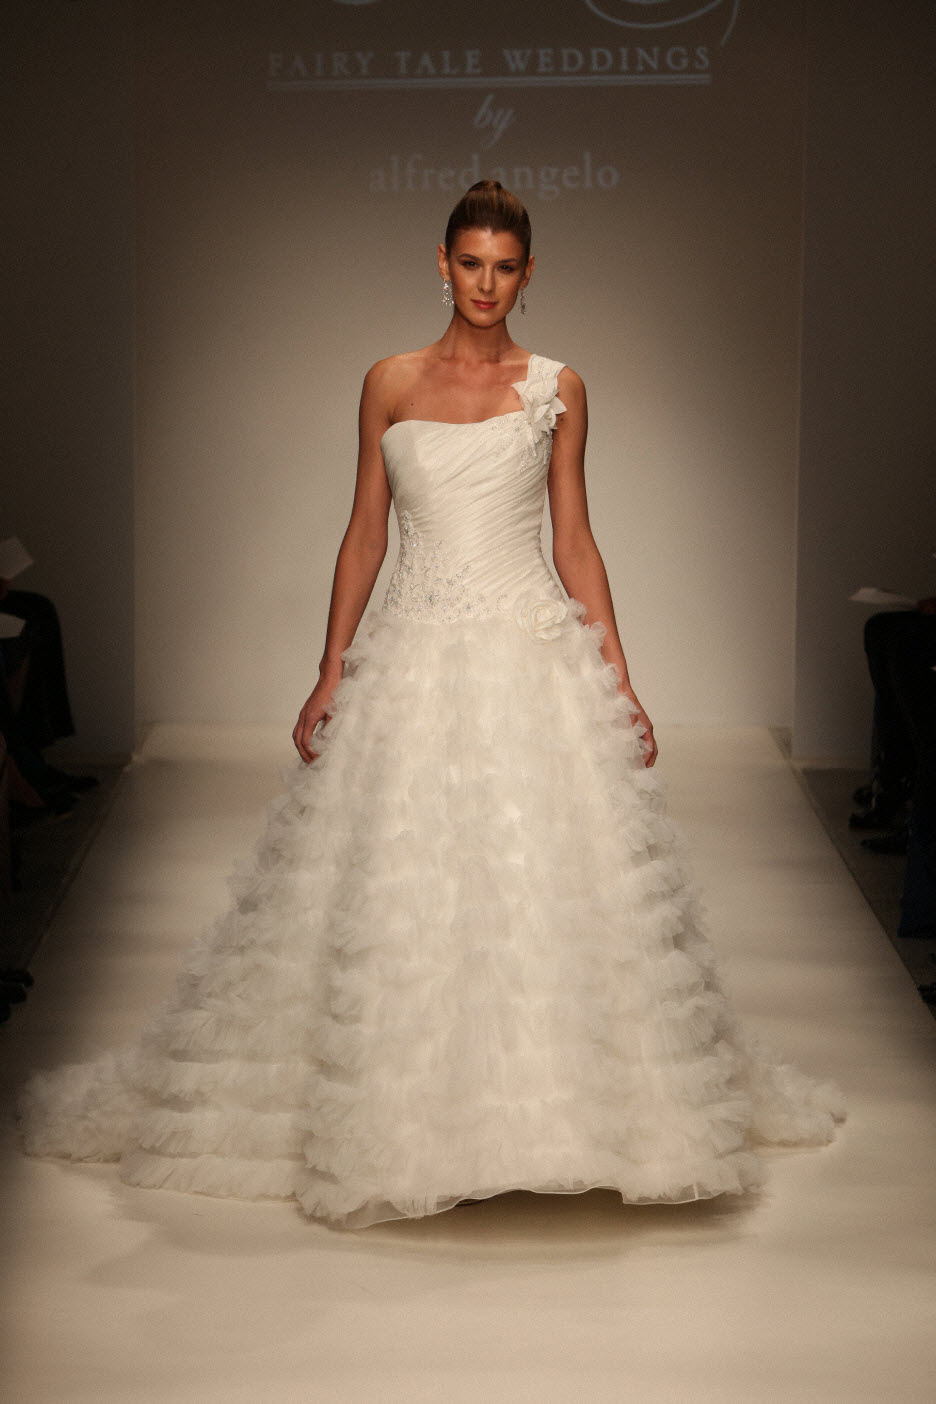 Aurora for Sleeping beauty wedding dress